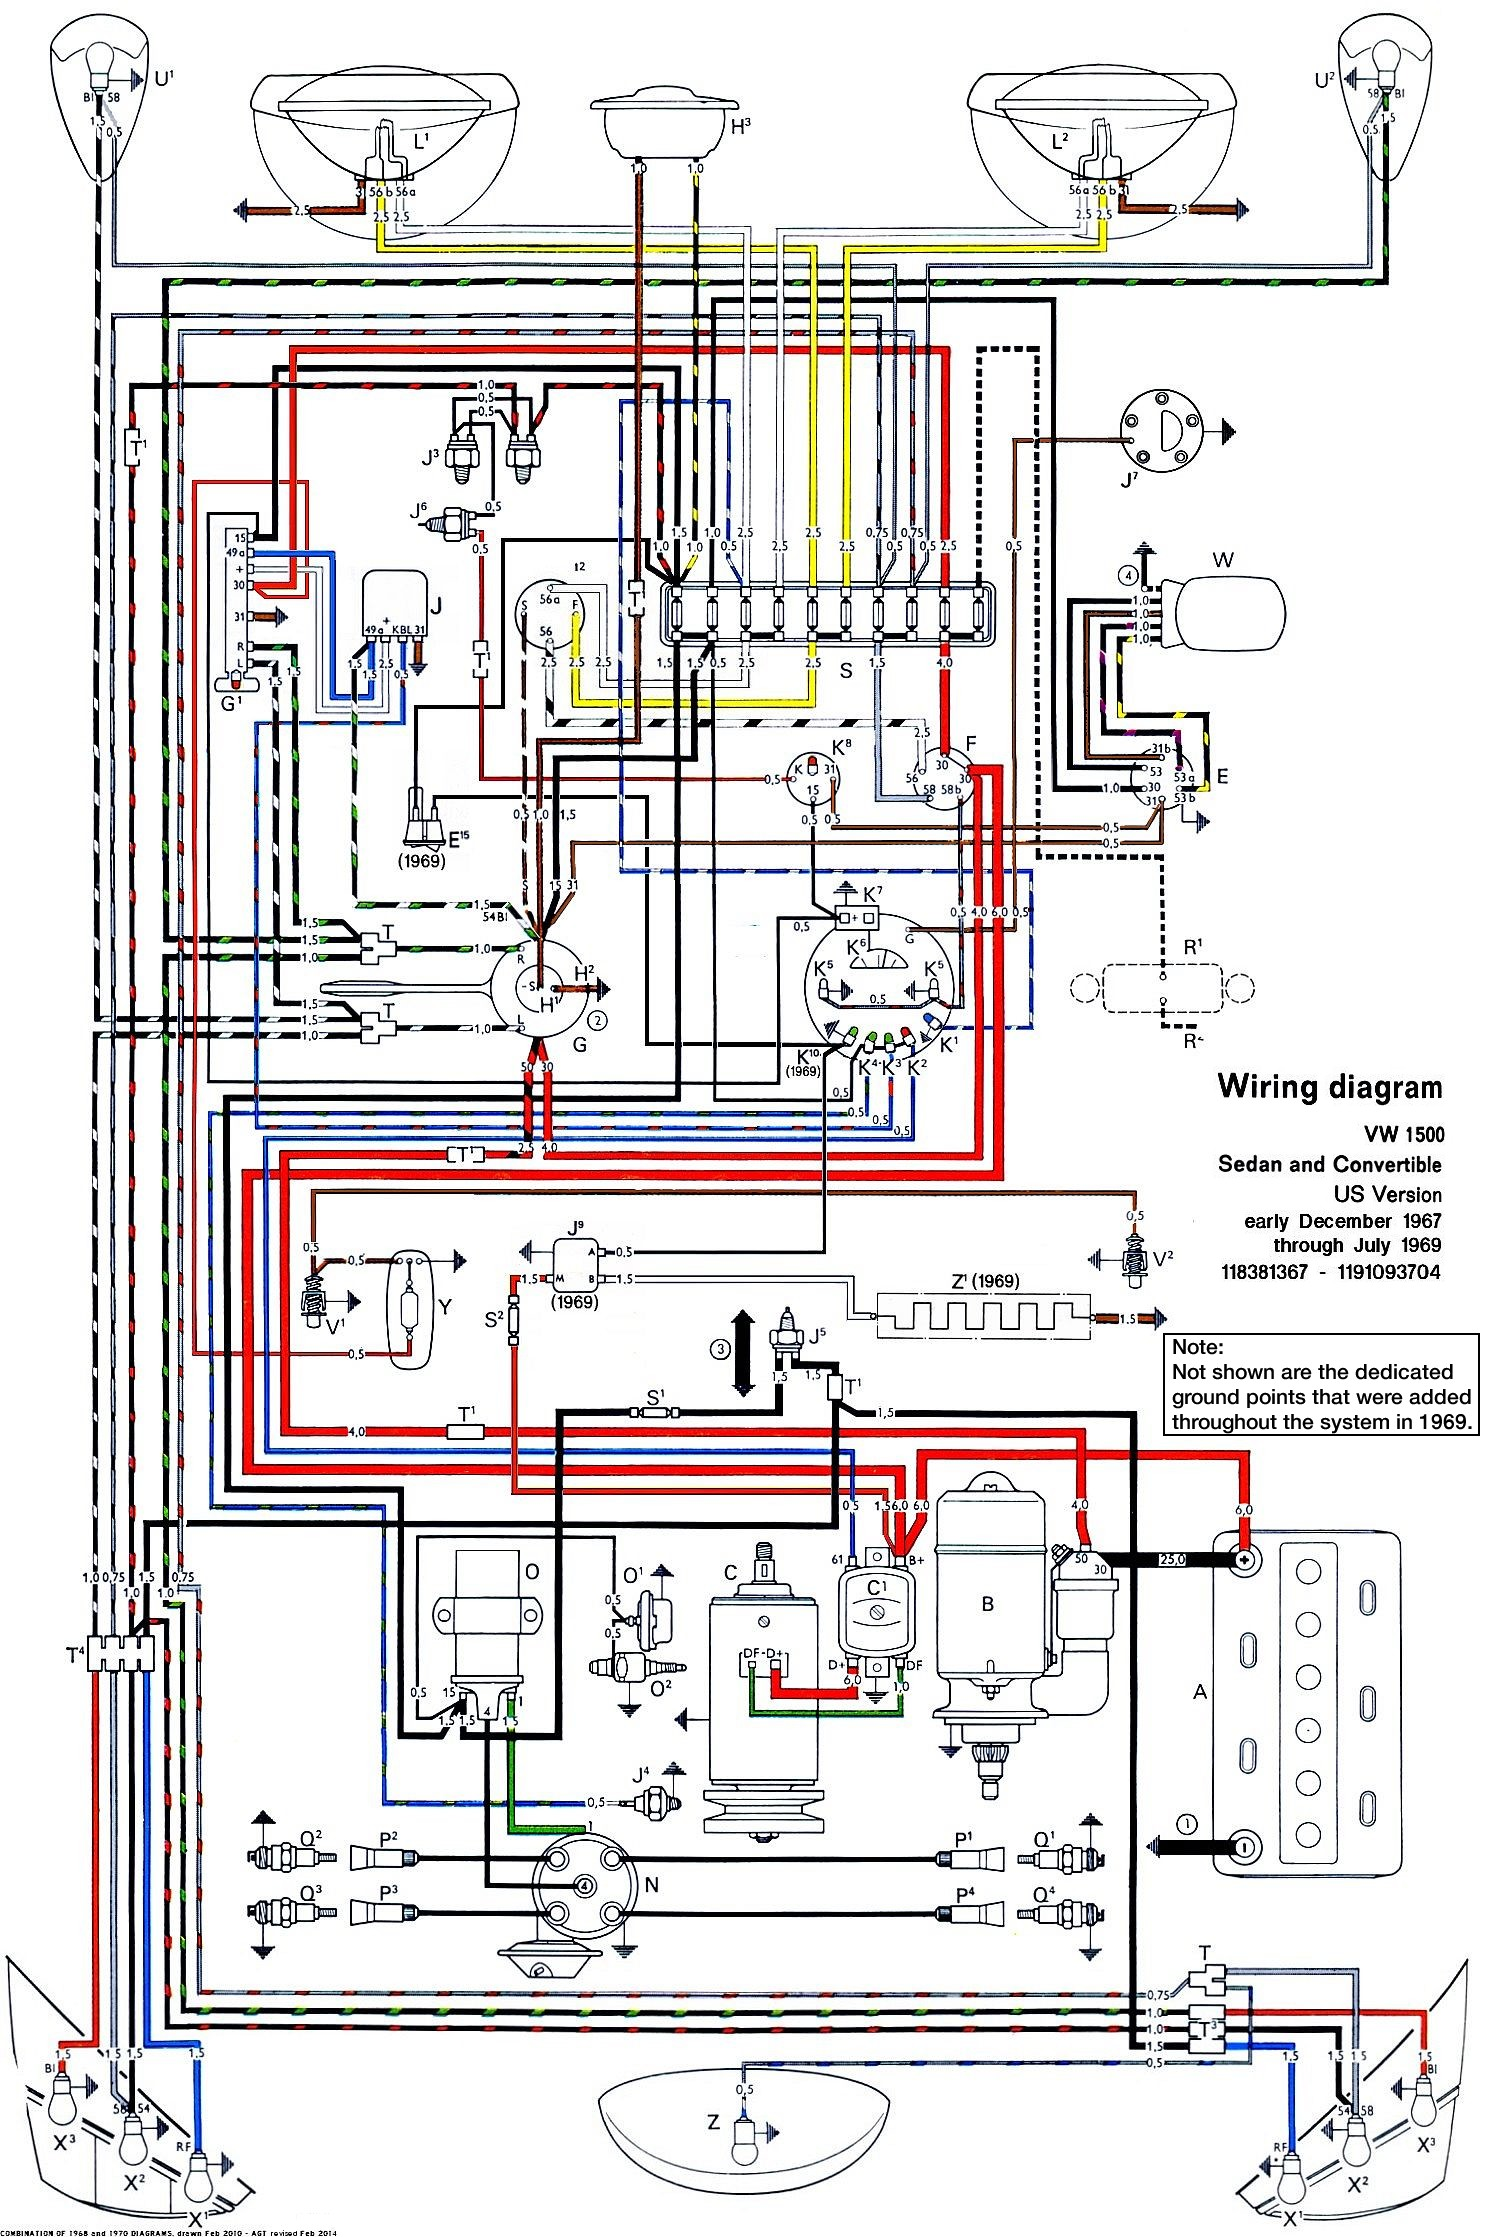 Beetle Wiring Schematic | Wiring Diagram on